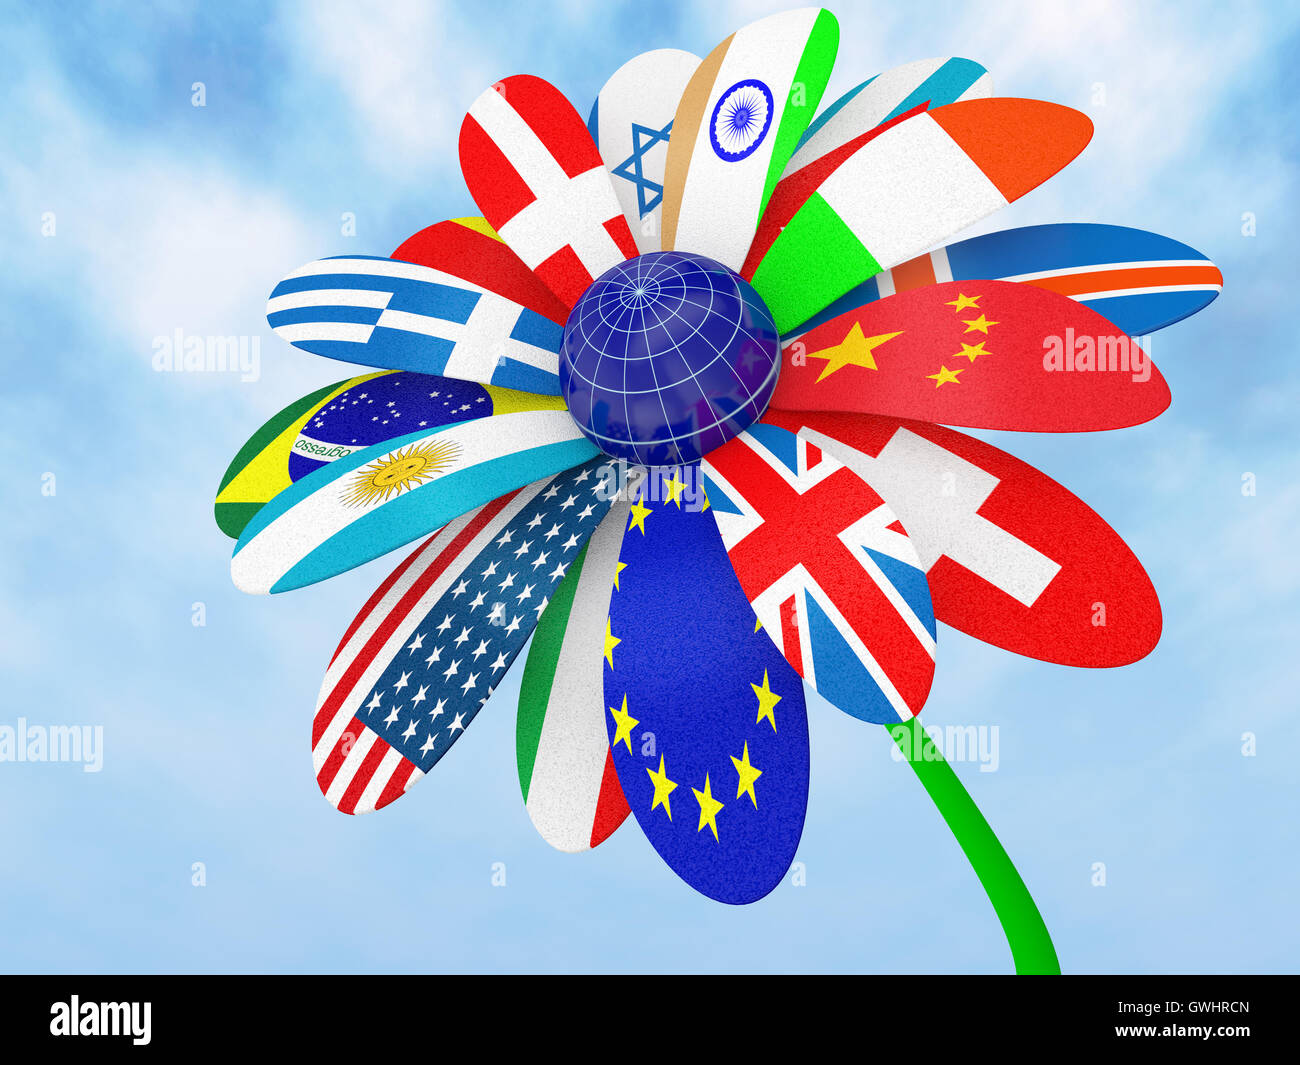 Camomile with flags - Stock Image